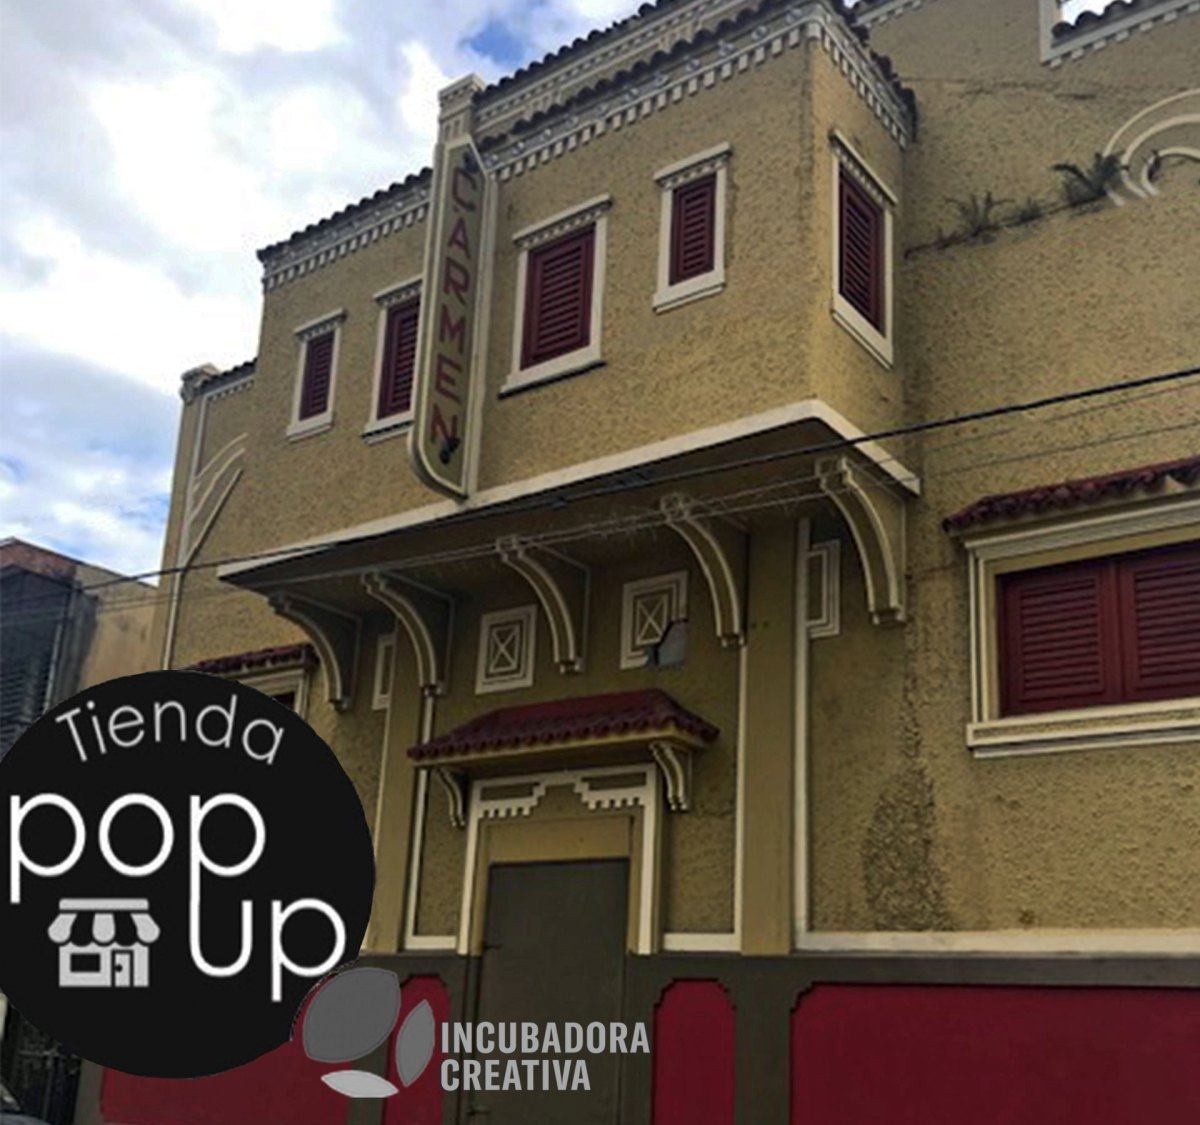 La Incubadora Creativa anuncia tienda Pop Up